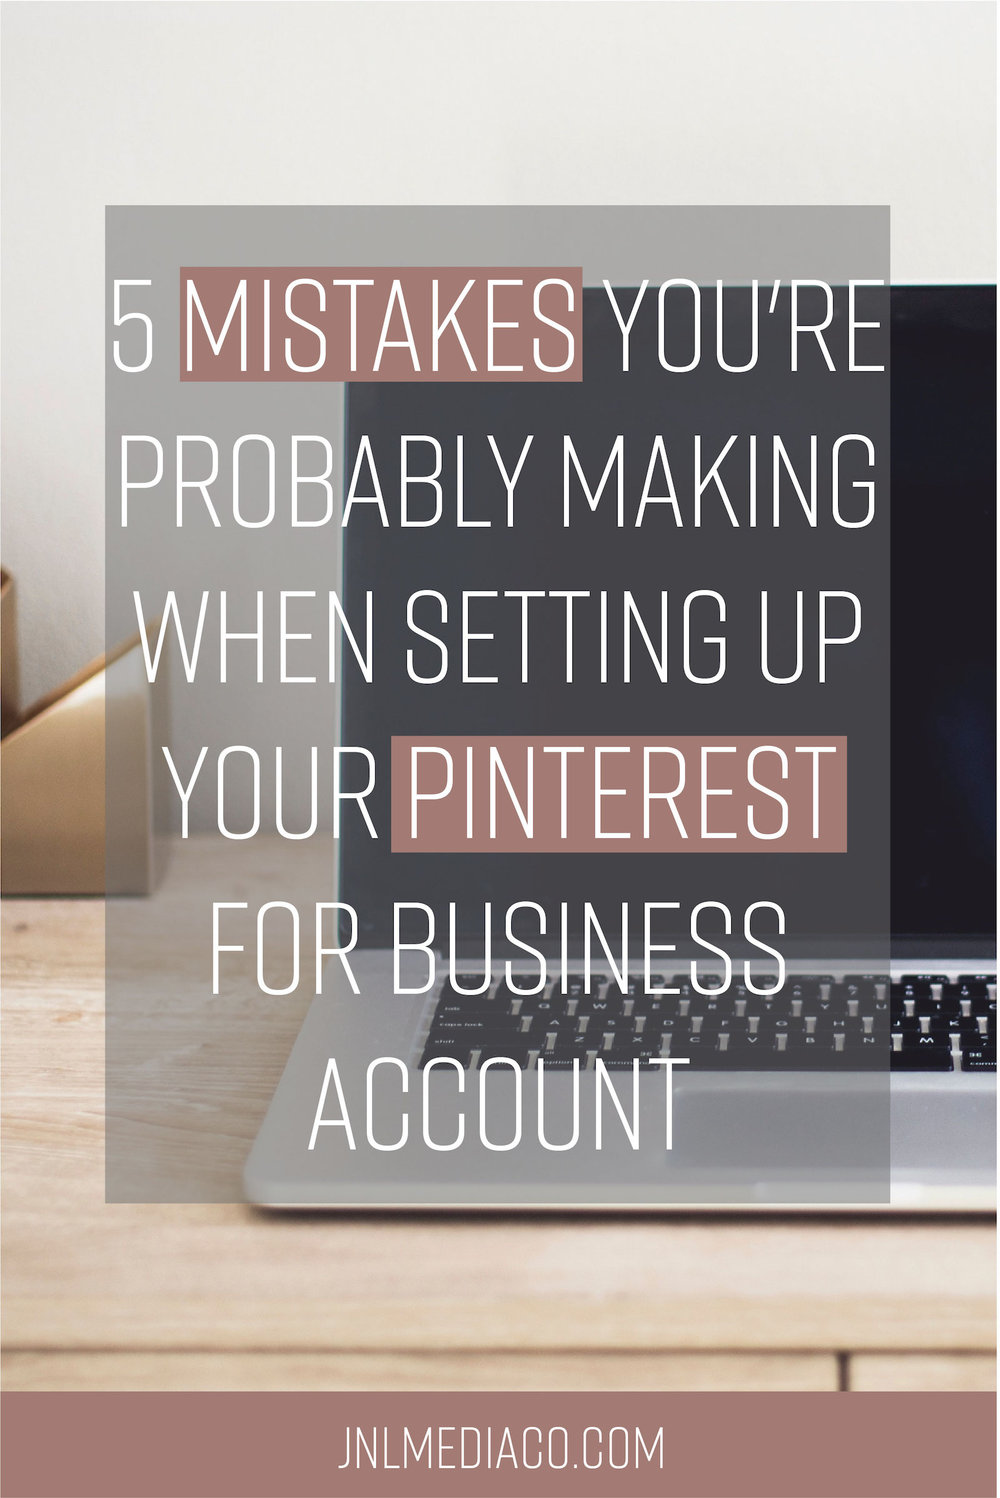 What are the 5 mistakes your're probably making when setting up your Pinterest for business account? I answer that and more so click to read more! Don't forget to re-pin it as well.